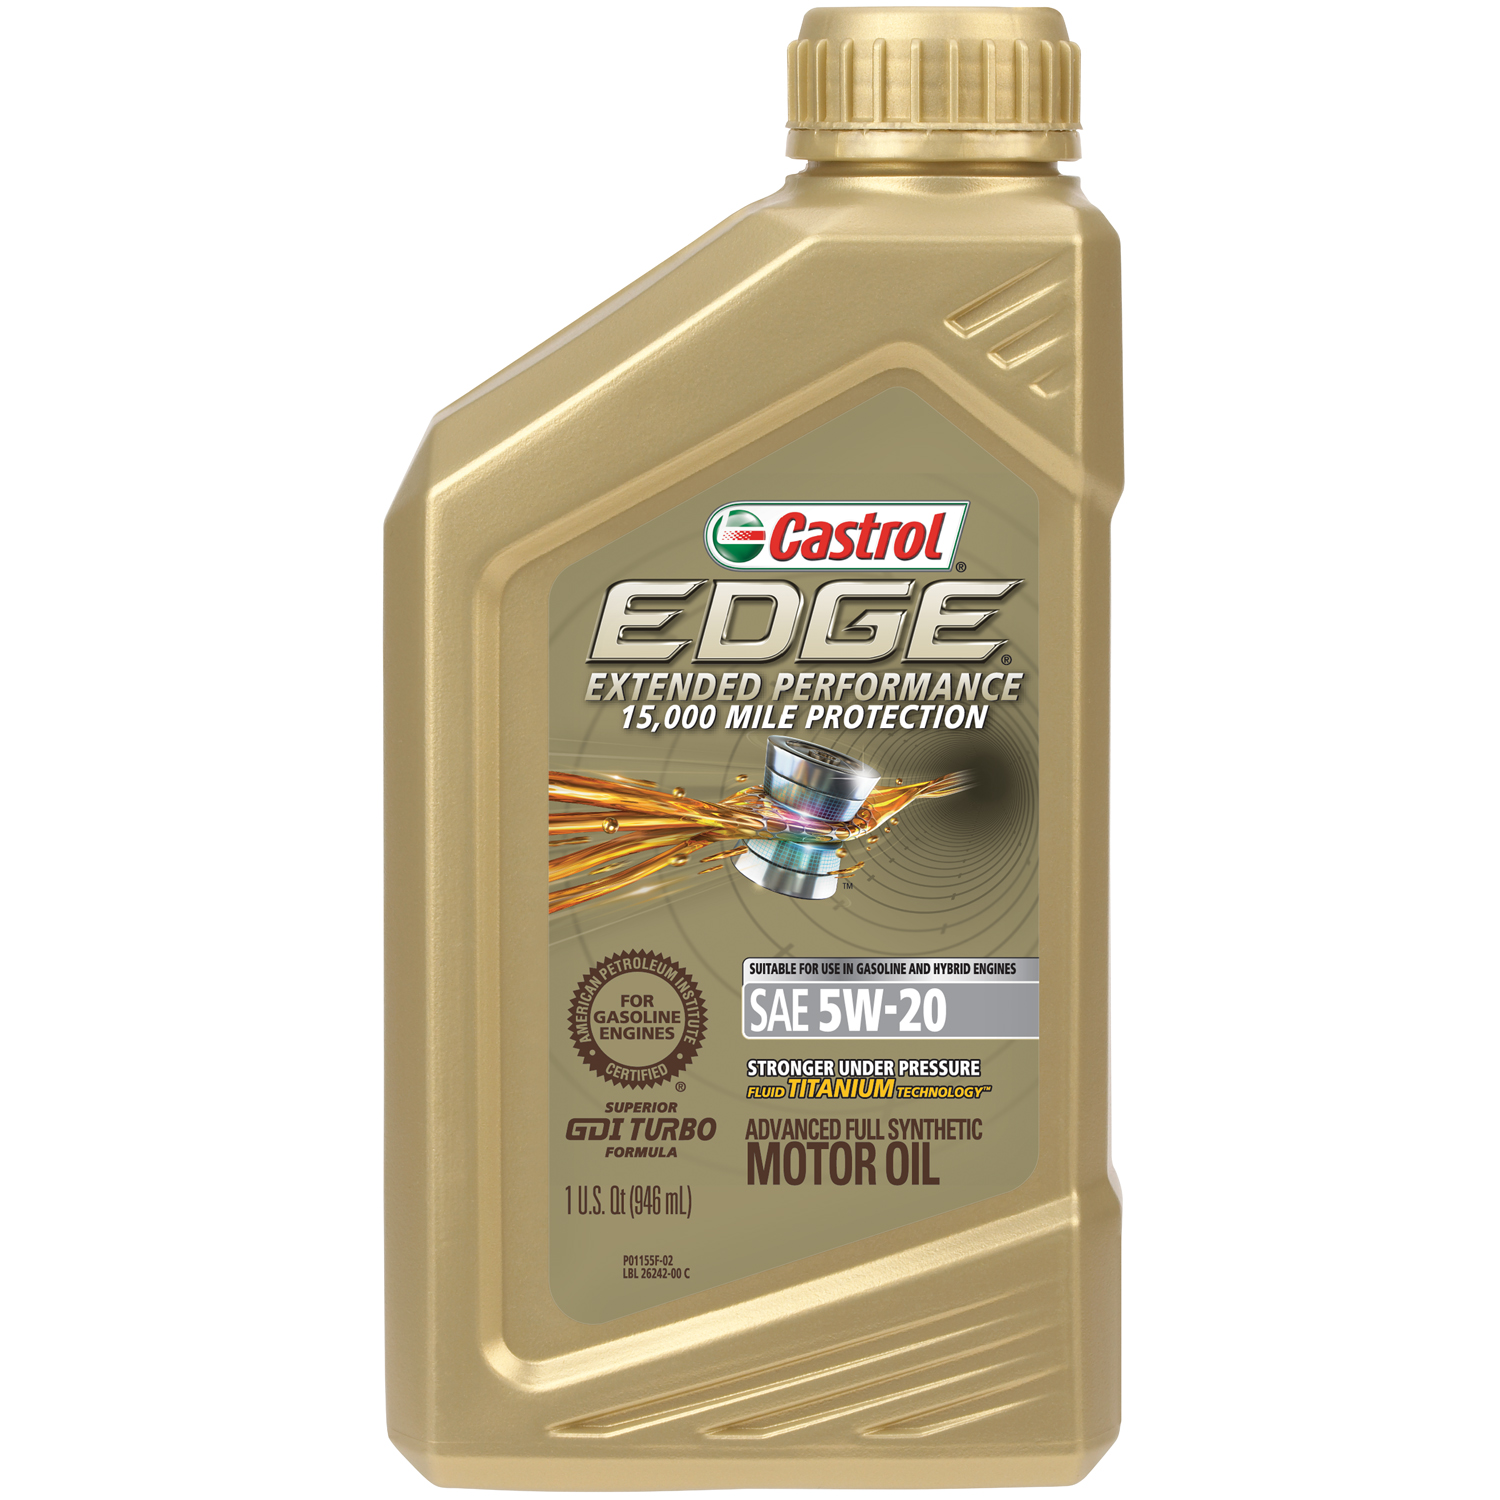 Castrol EDGE Extended Performance 5W-20 Advanced Full Synthetic Motor Oil, 1 QT